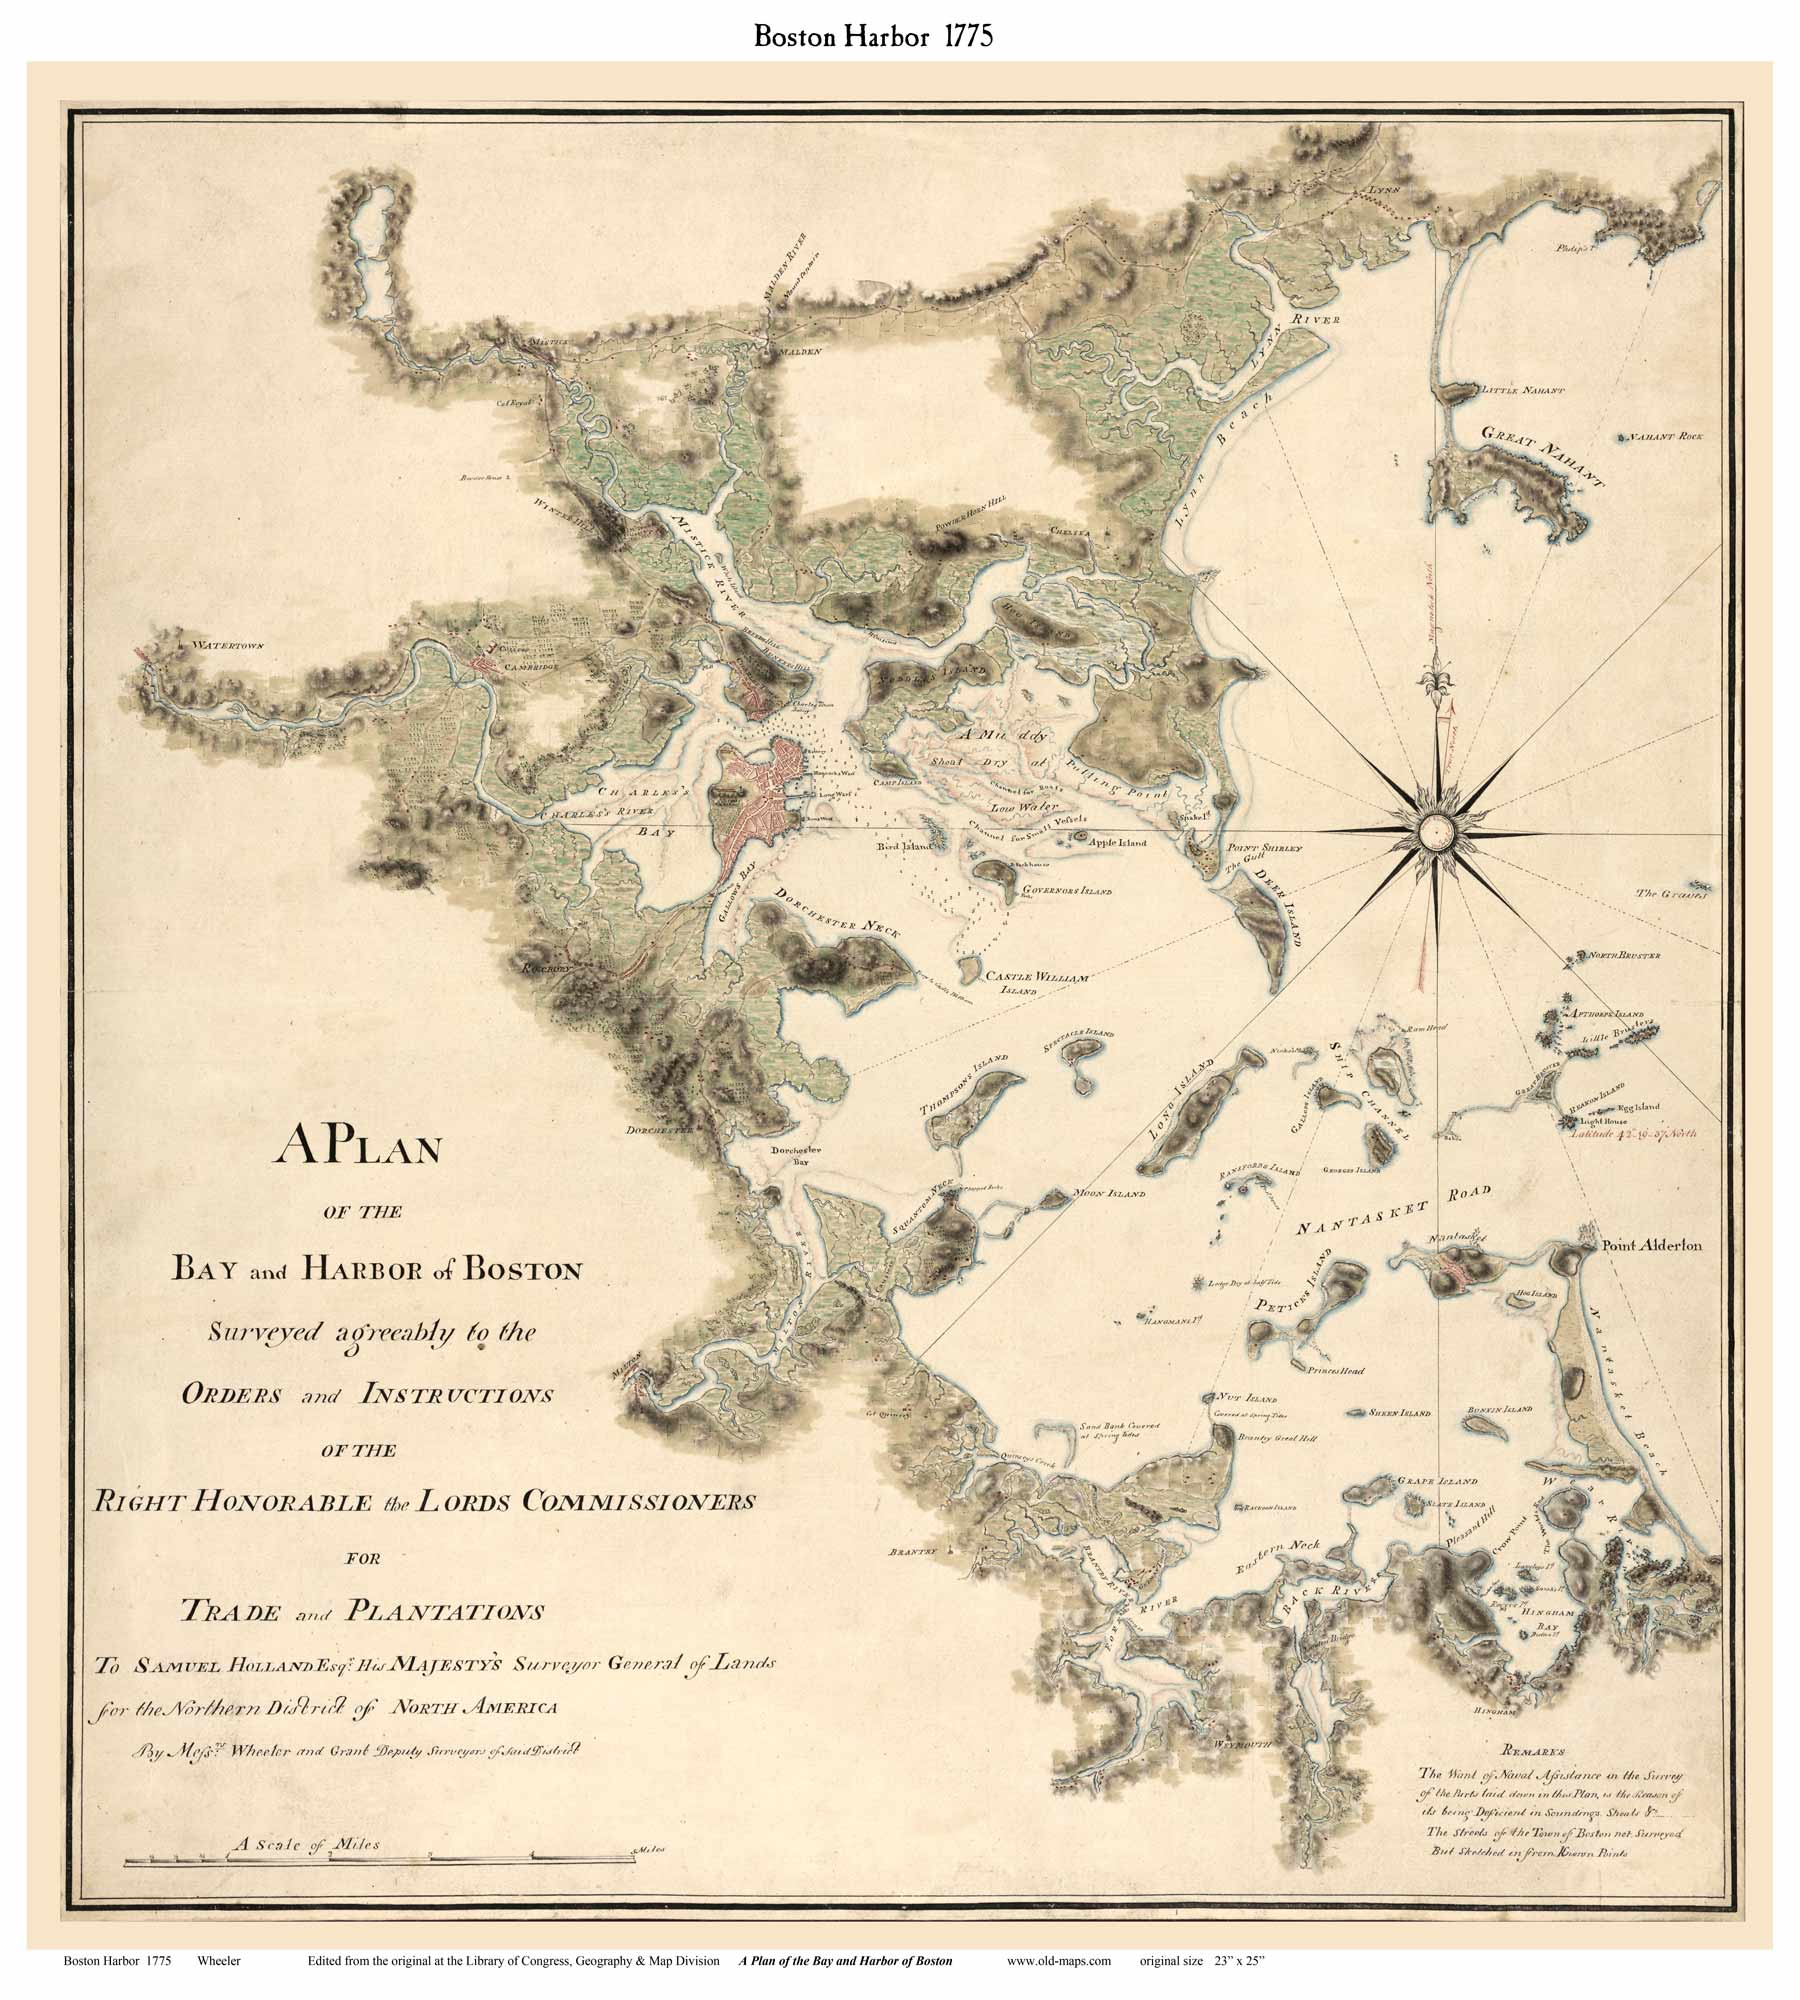 map of colonial boston area Old Maps Of Boston map of colonial boston area